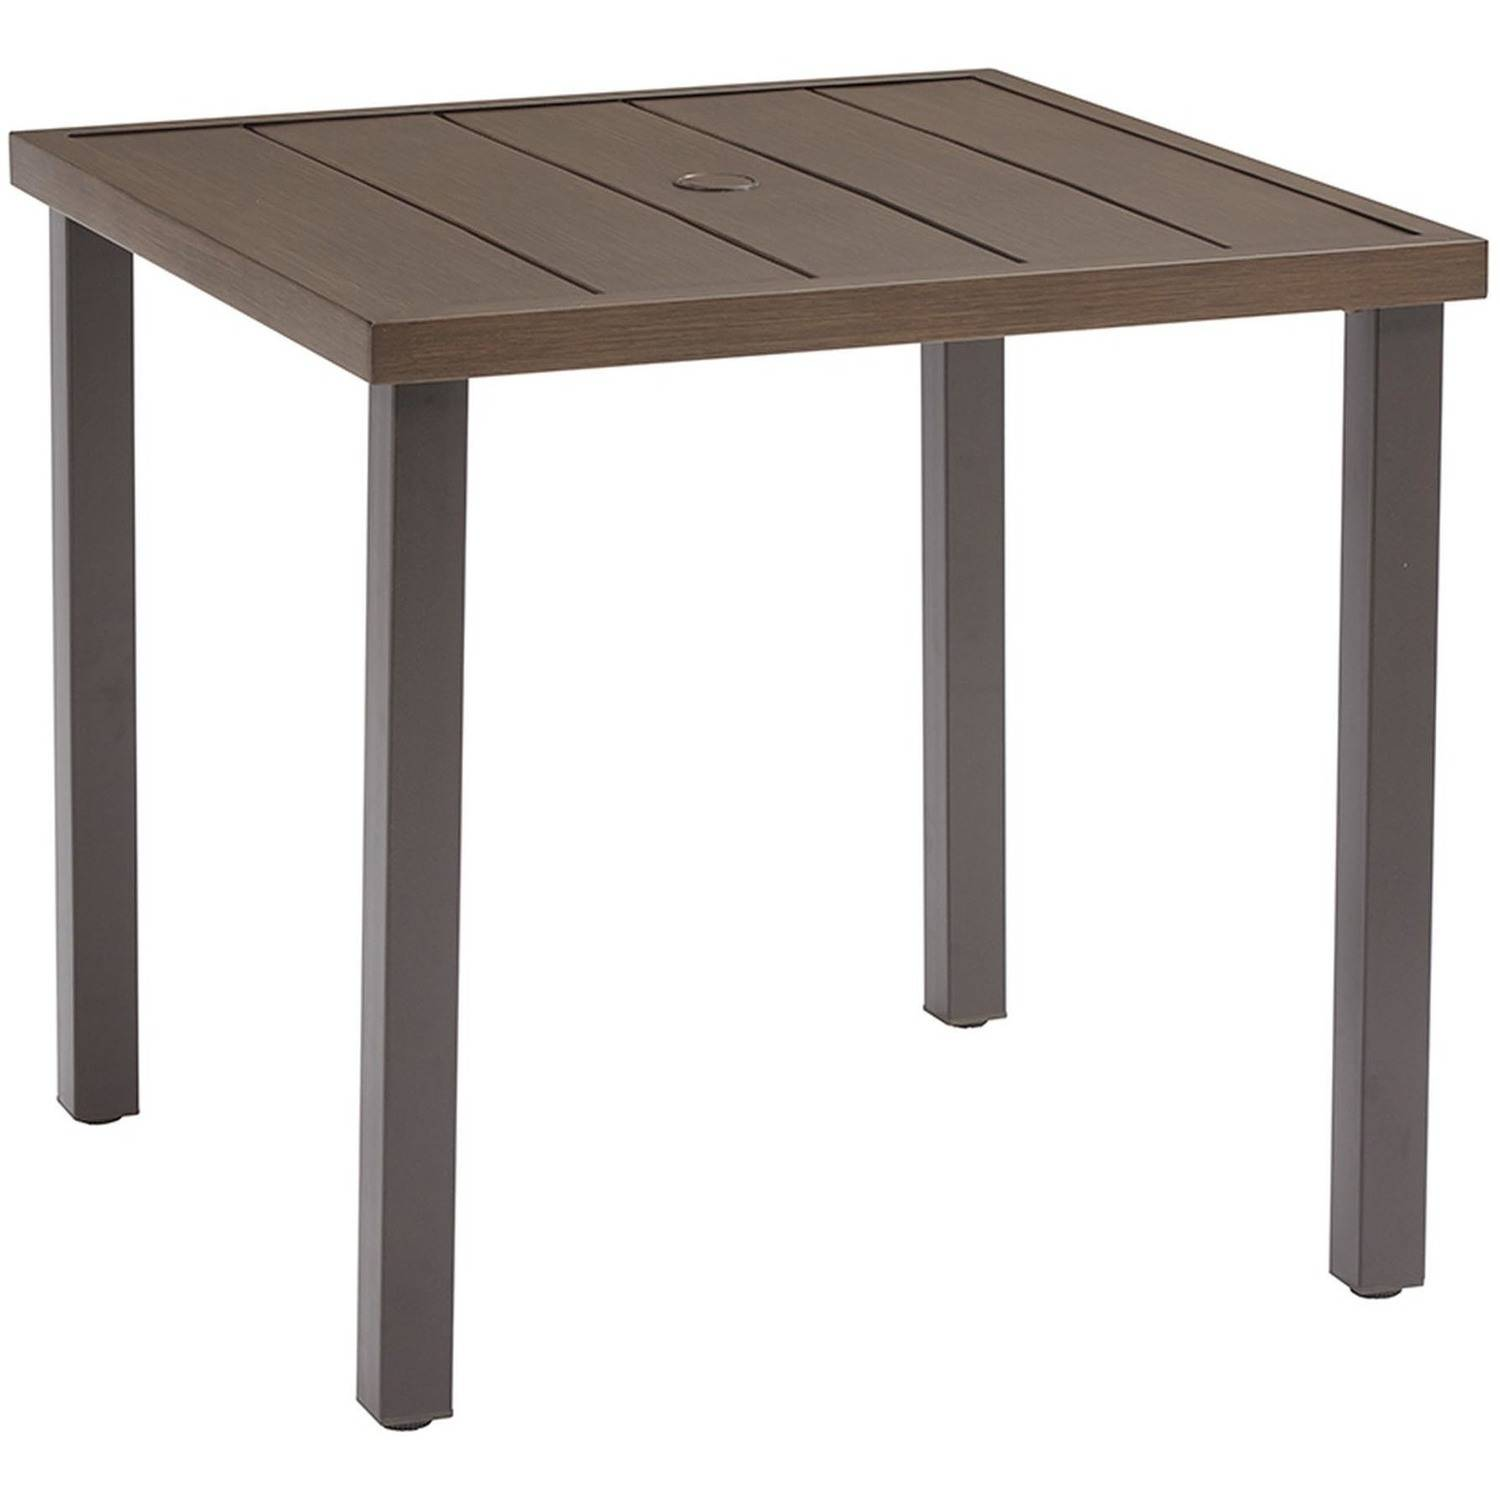 Attractive outdoor table better homes and gardens camrose farmhouse steel bistro table, 29.92 lpvhezd